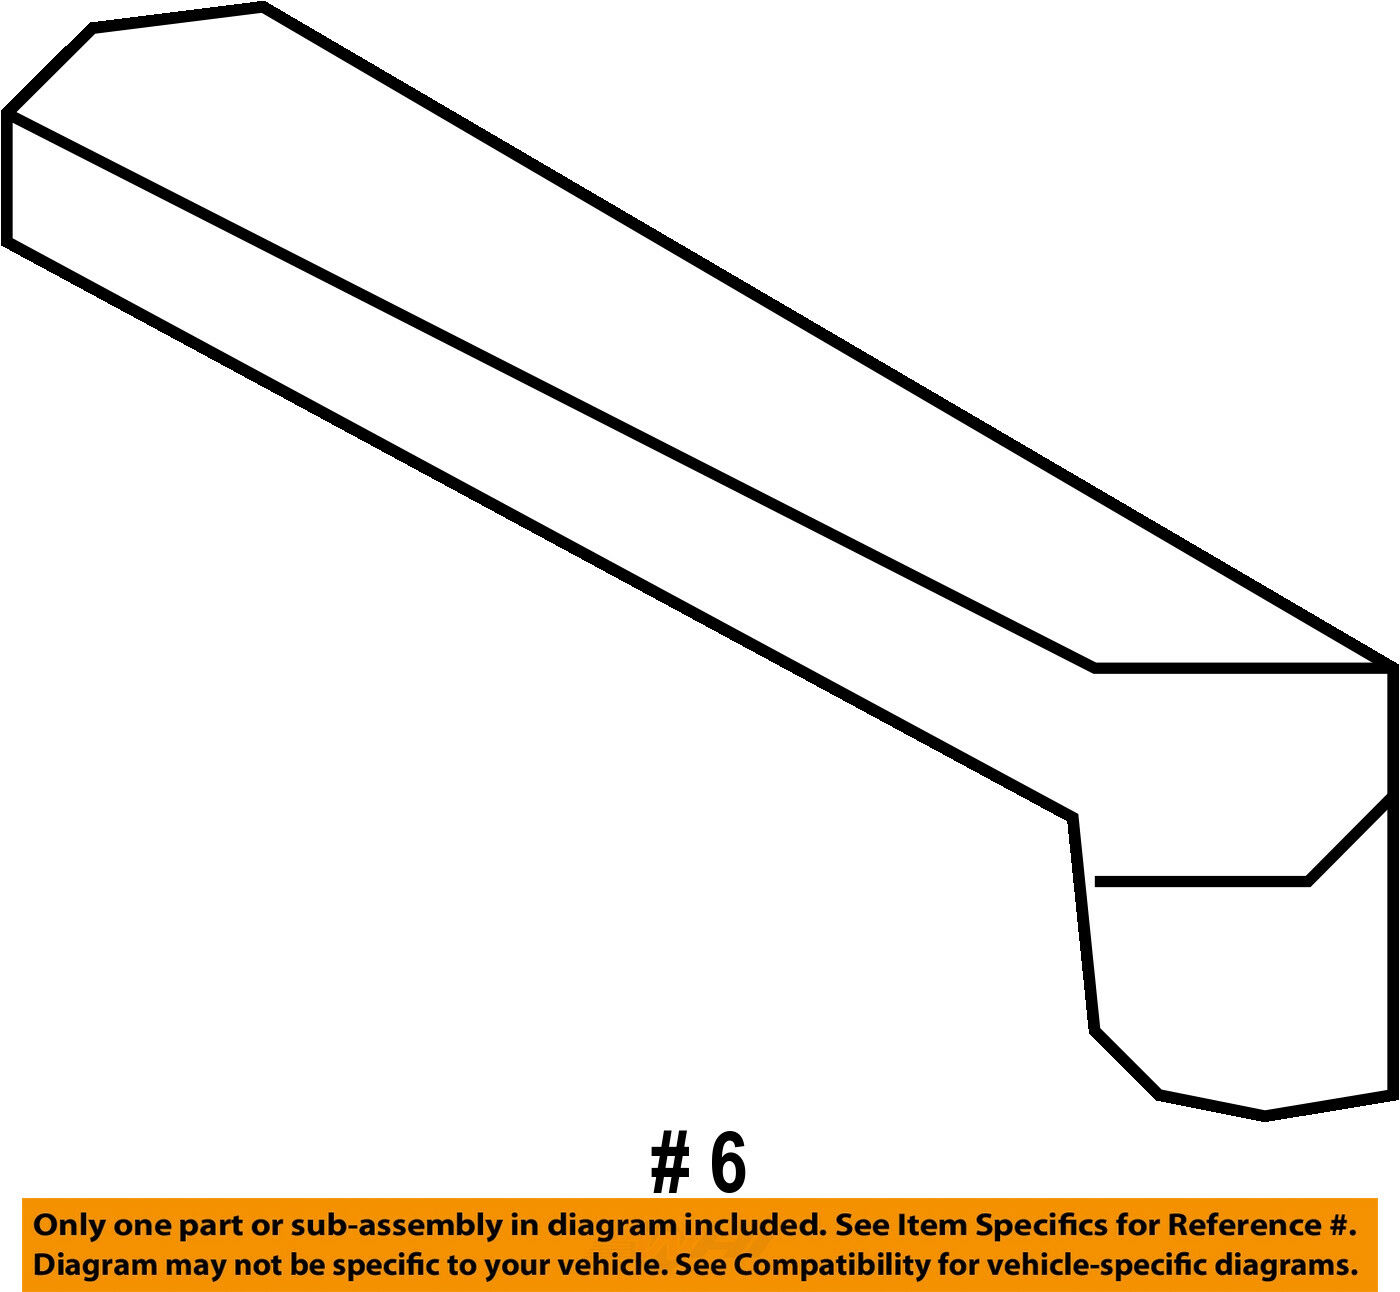 Jeep Chrysler Oem 97 17 Wrangler Hood Silencer Support Bracket Diagrams 1 Of 2free Shipping